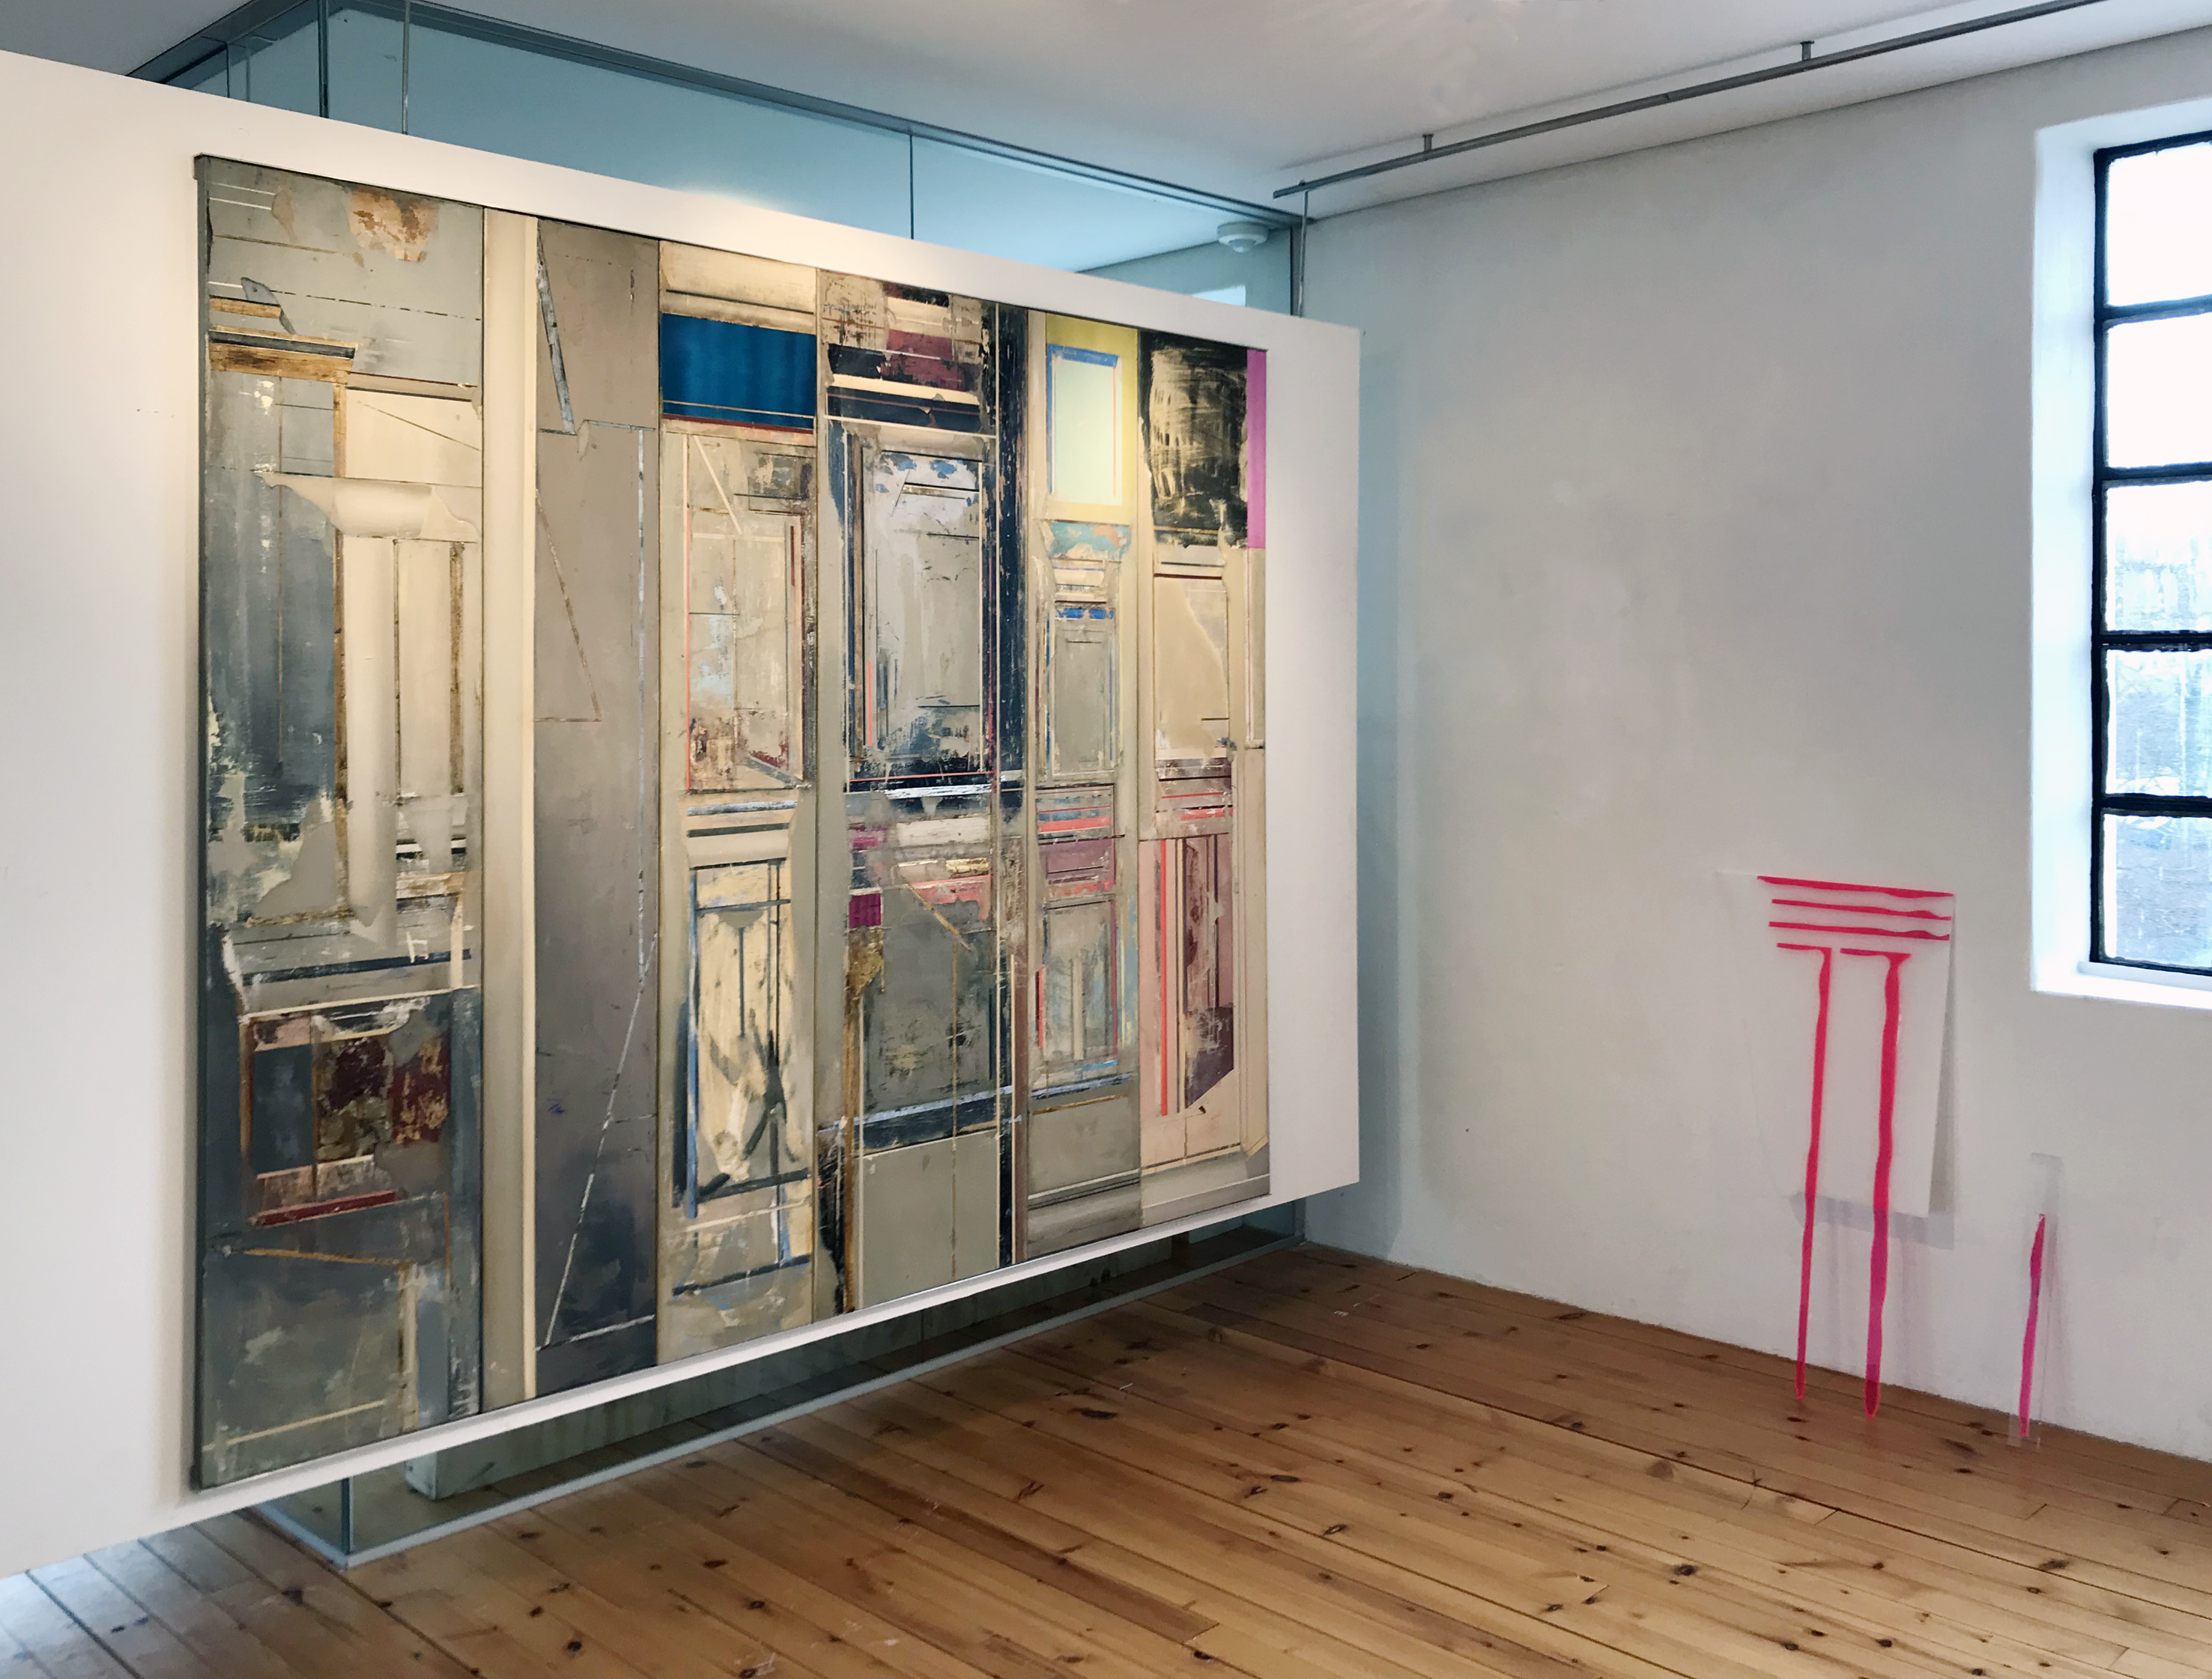 Open Space Exhibitions in Pennsylvania, Tromsø and Namsos - Installation, Photography, Video and Painting